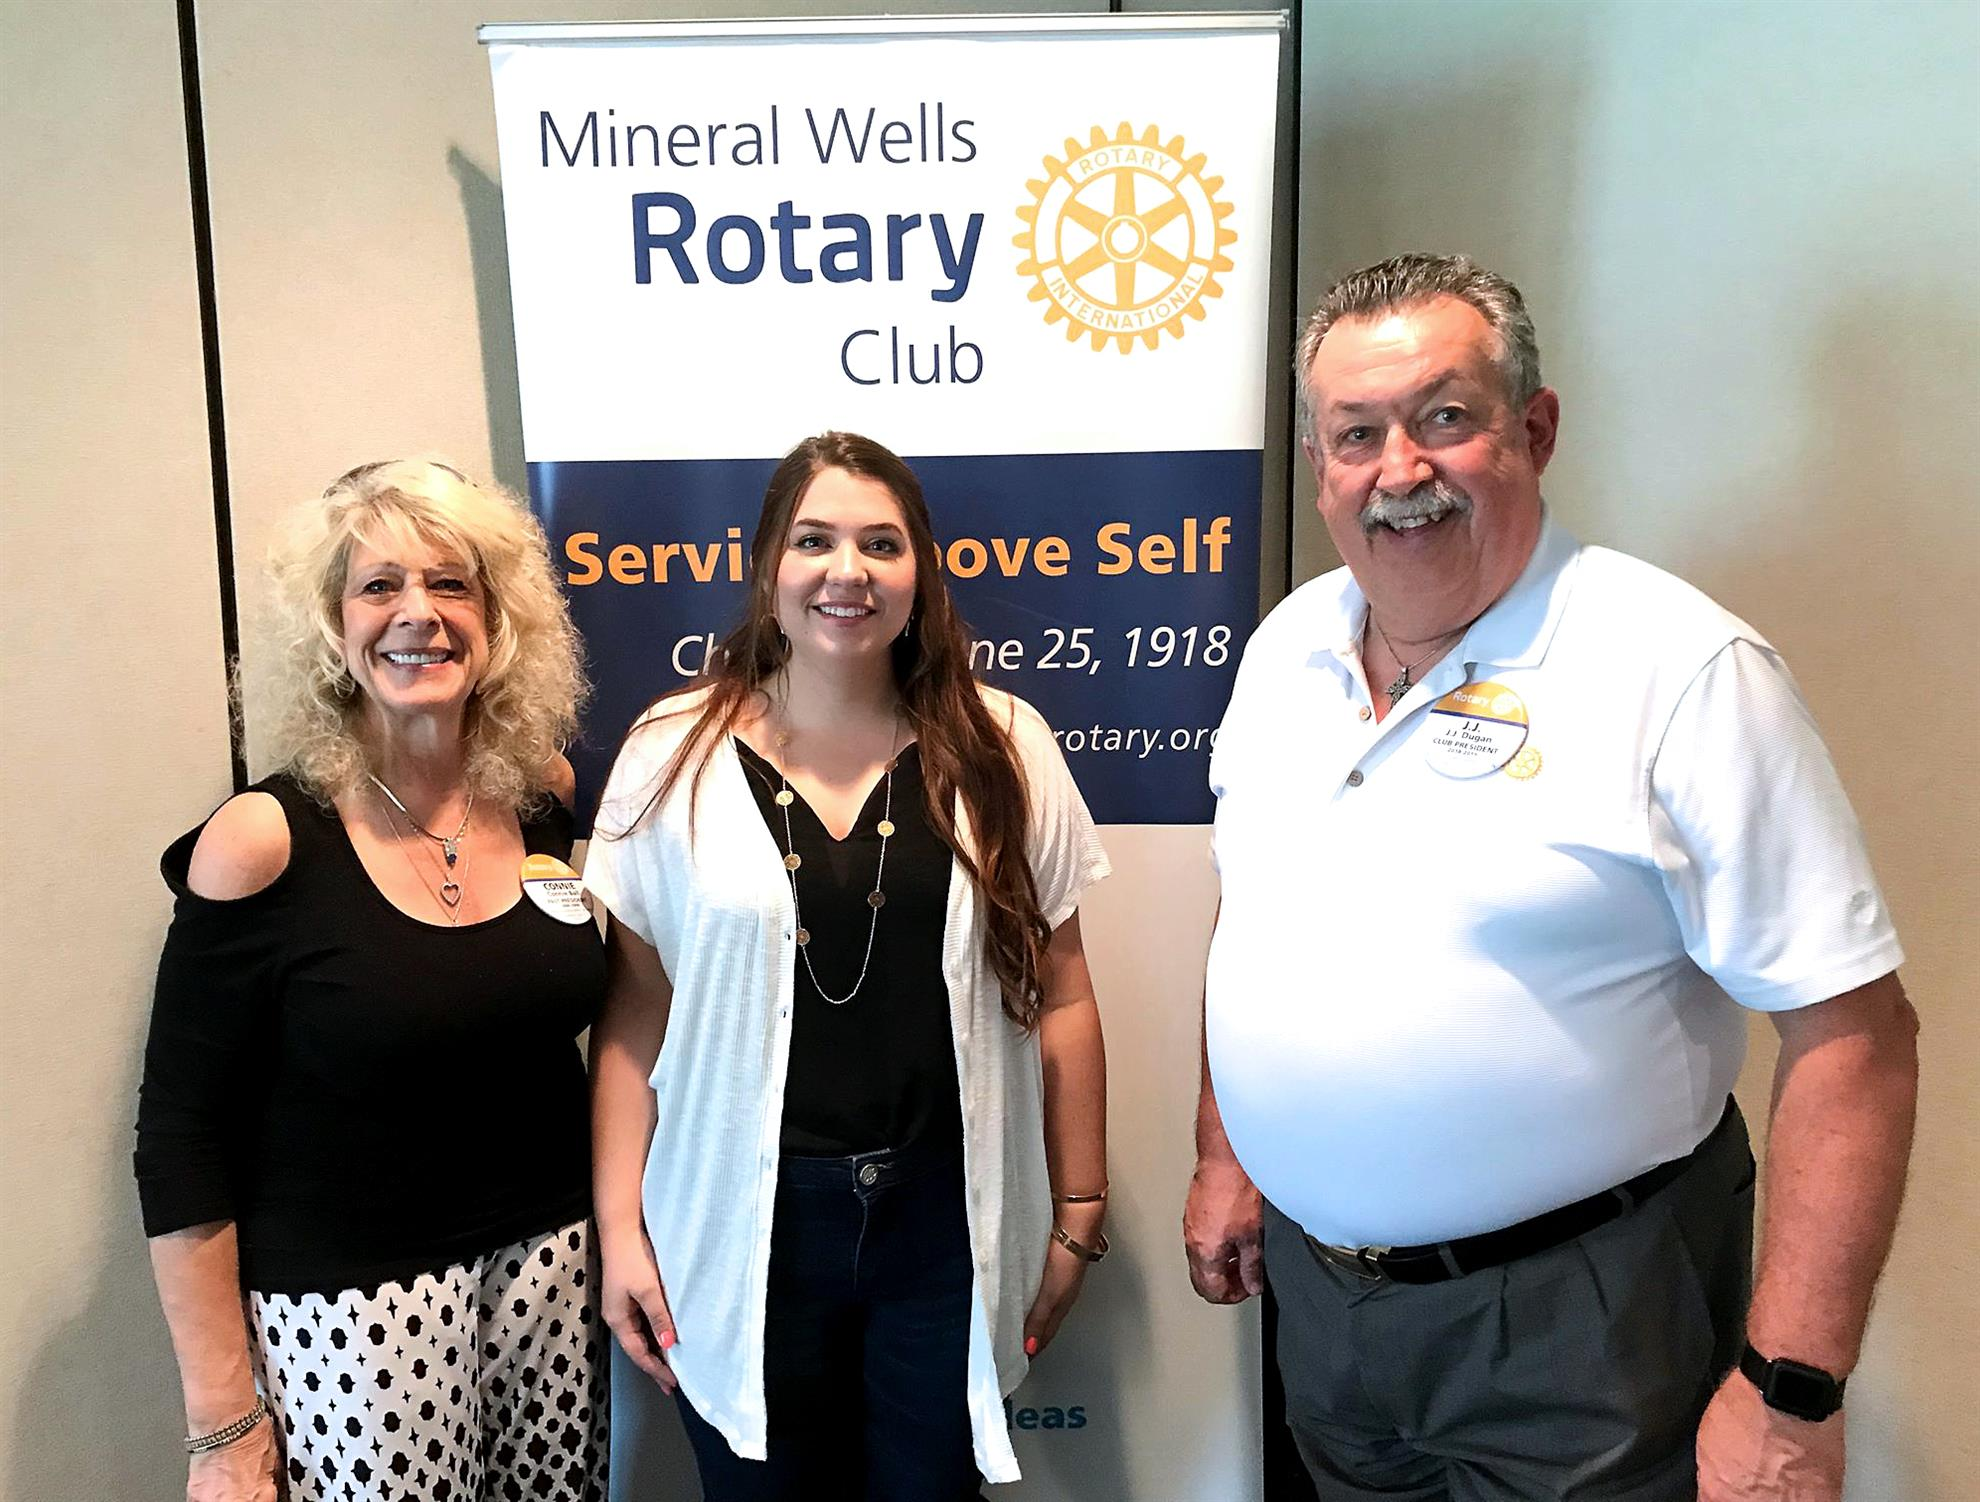 Stories | Rotary Club of Mineral Wells